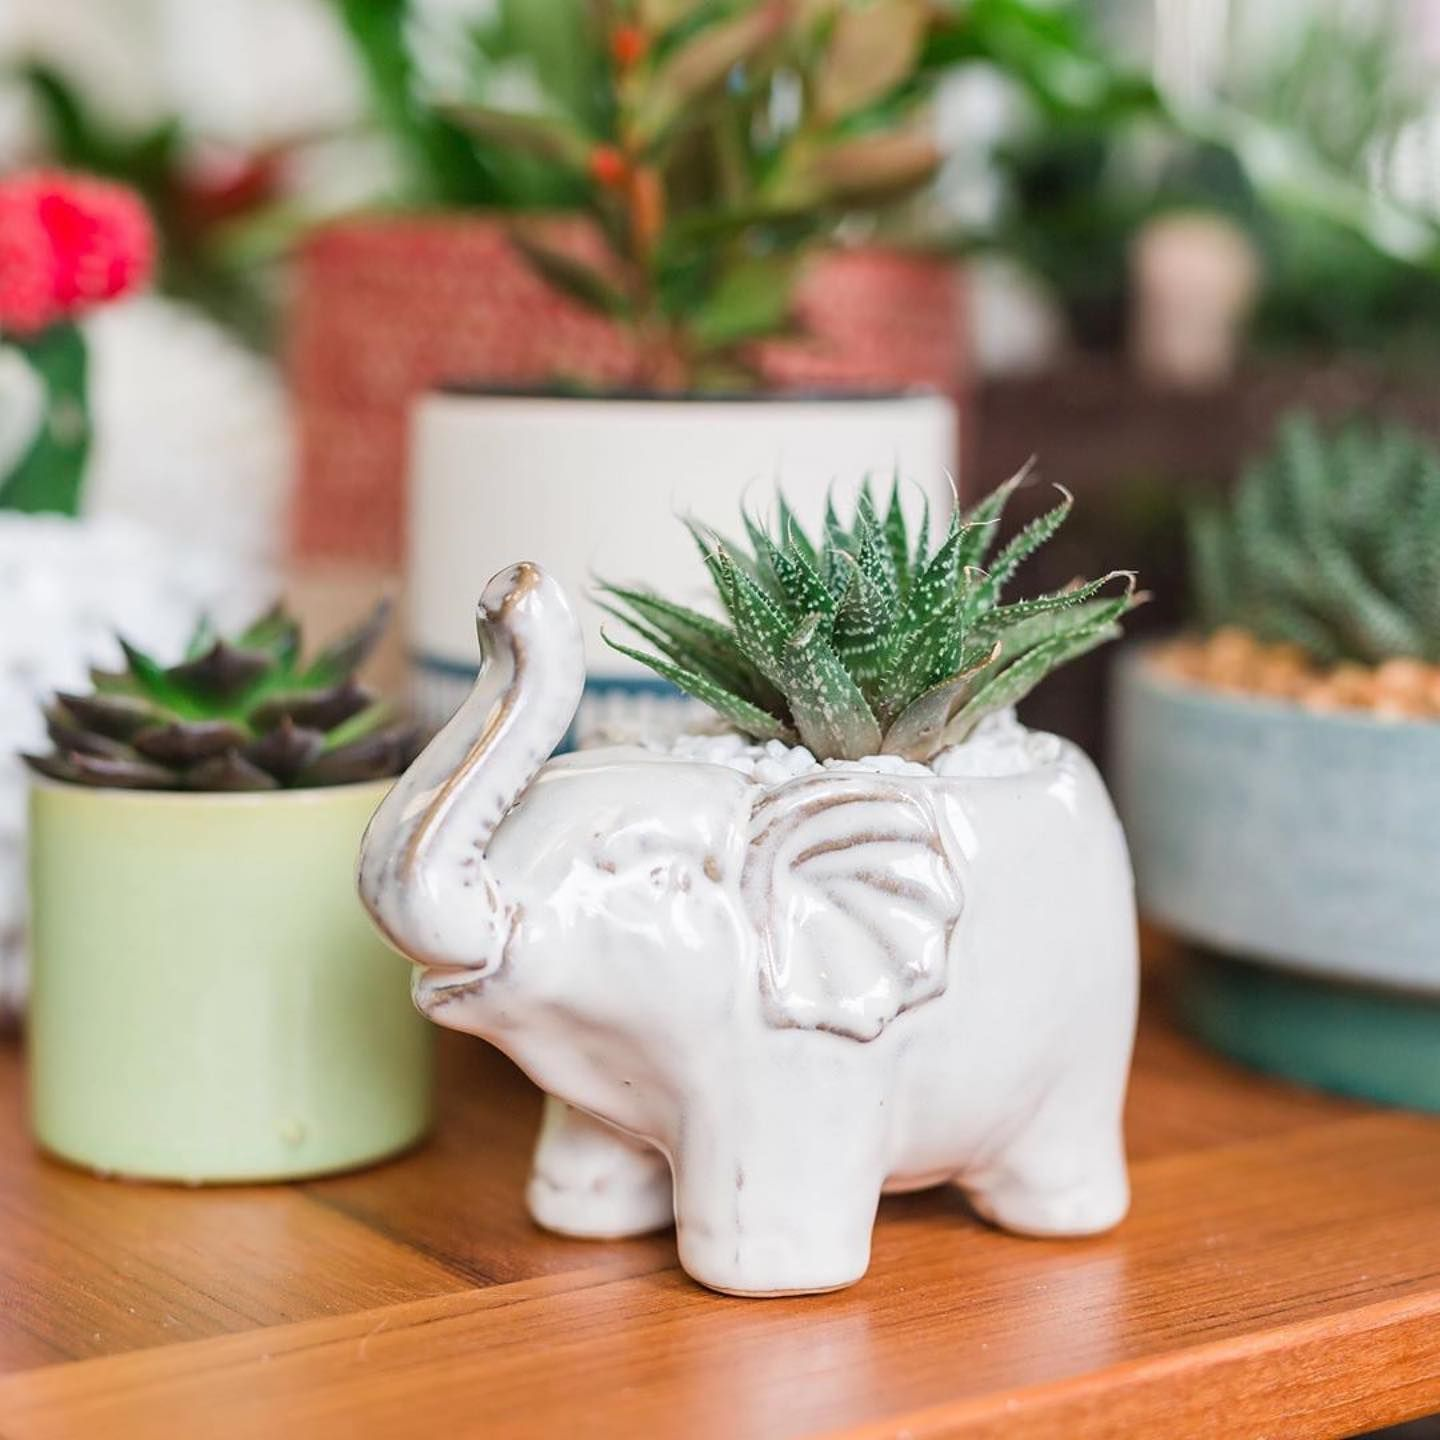 How cute spruce up your home with succulents this